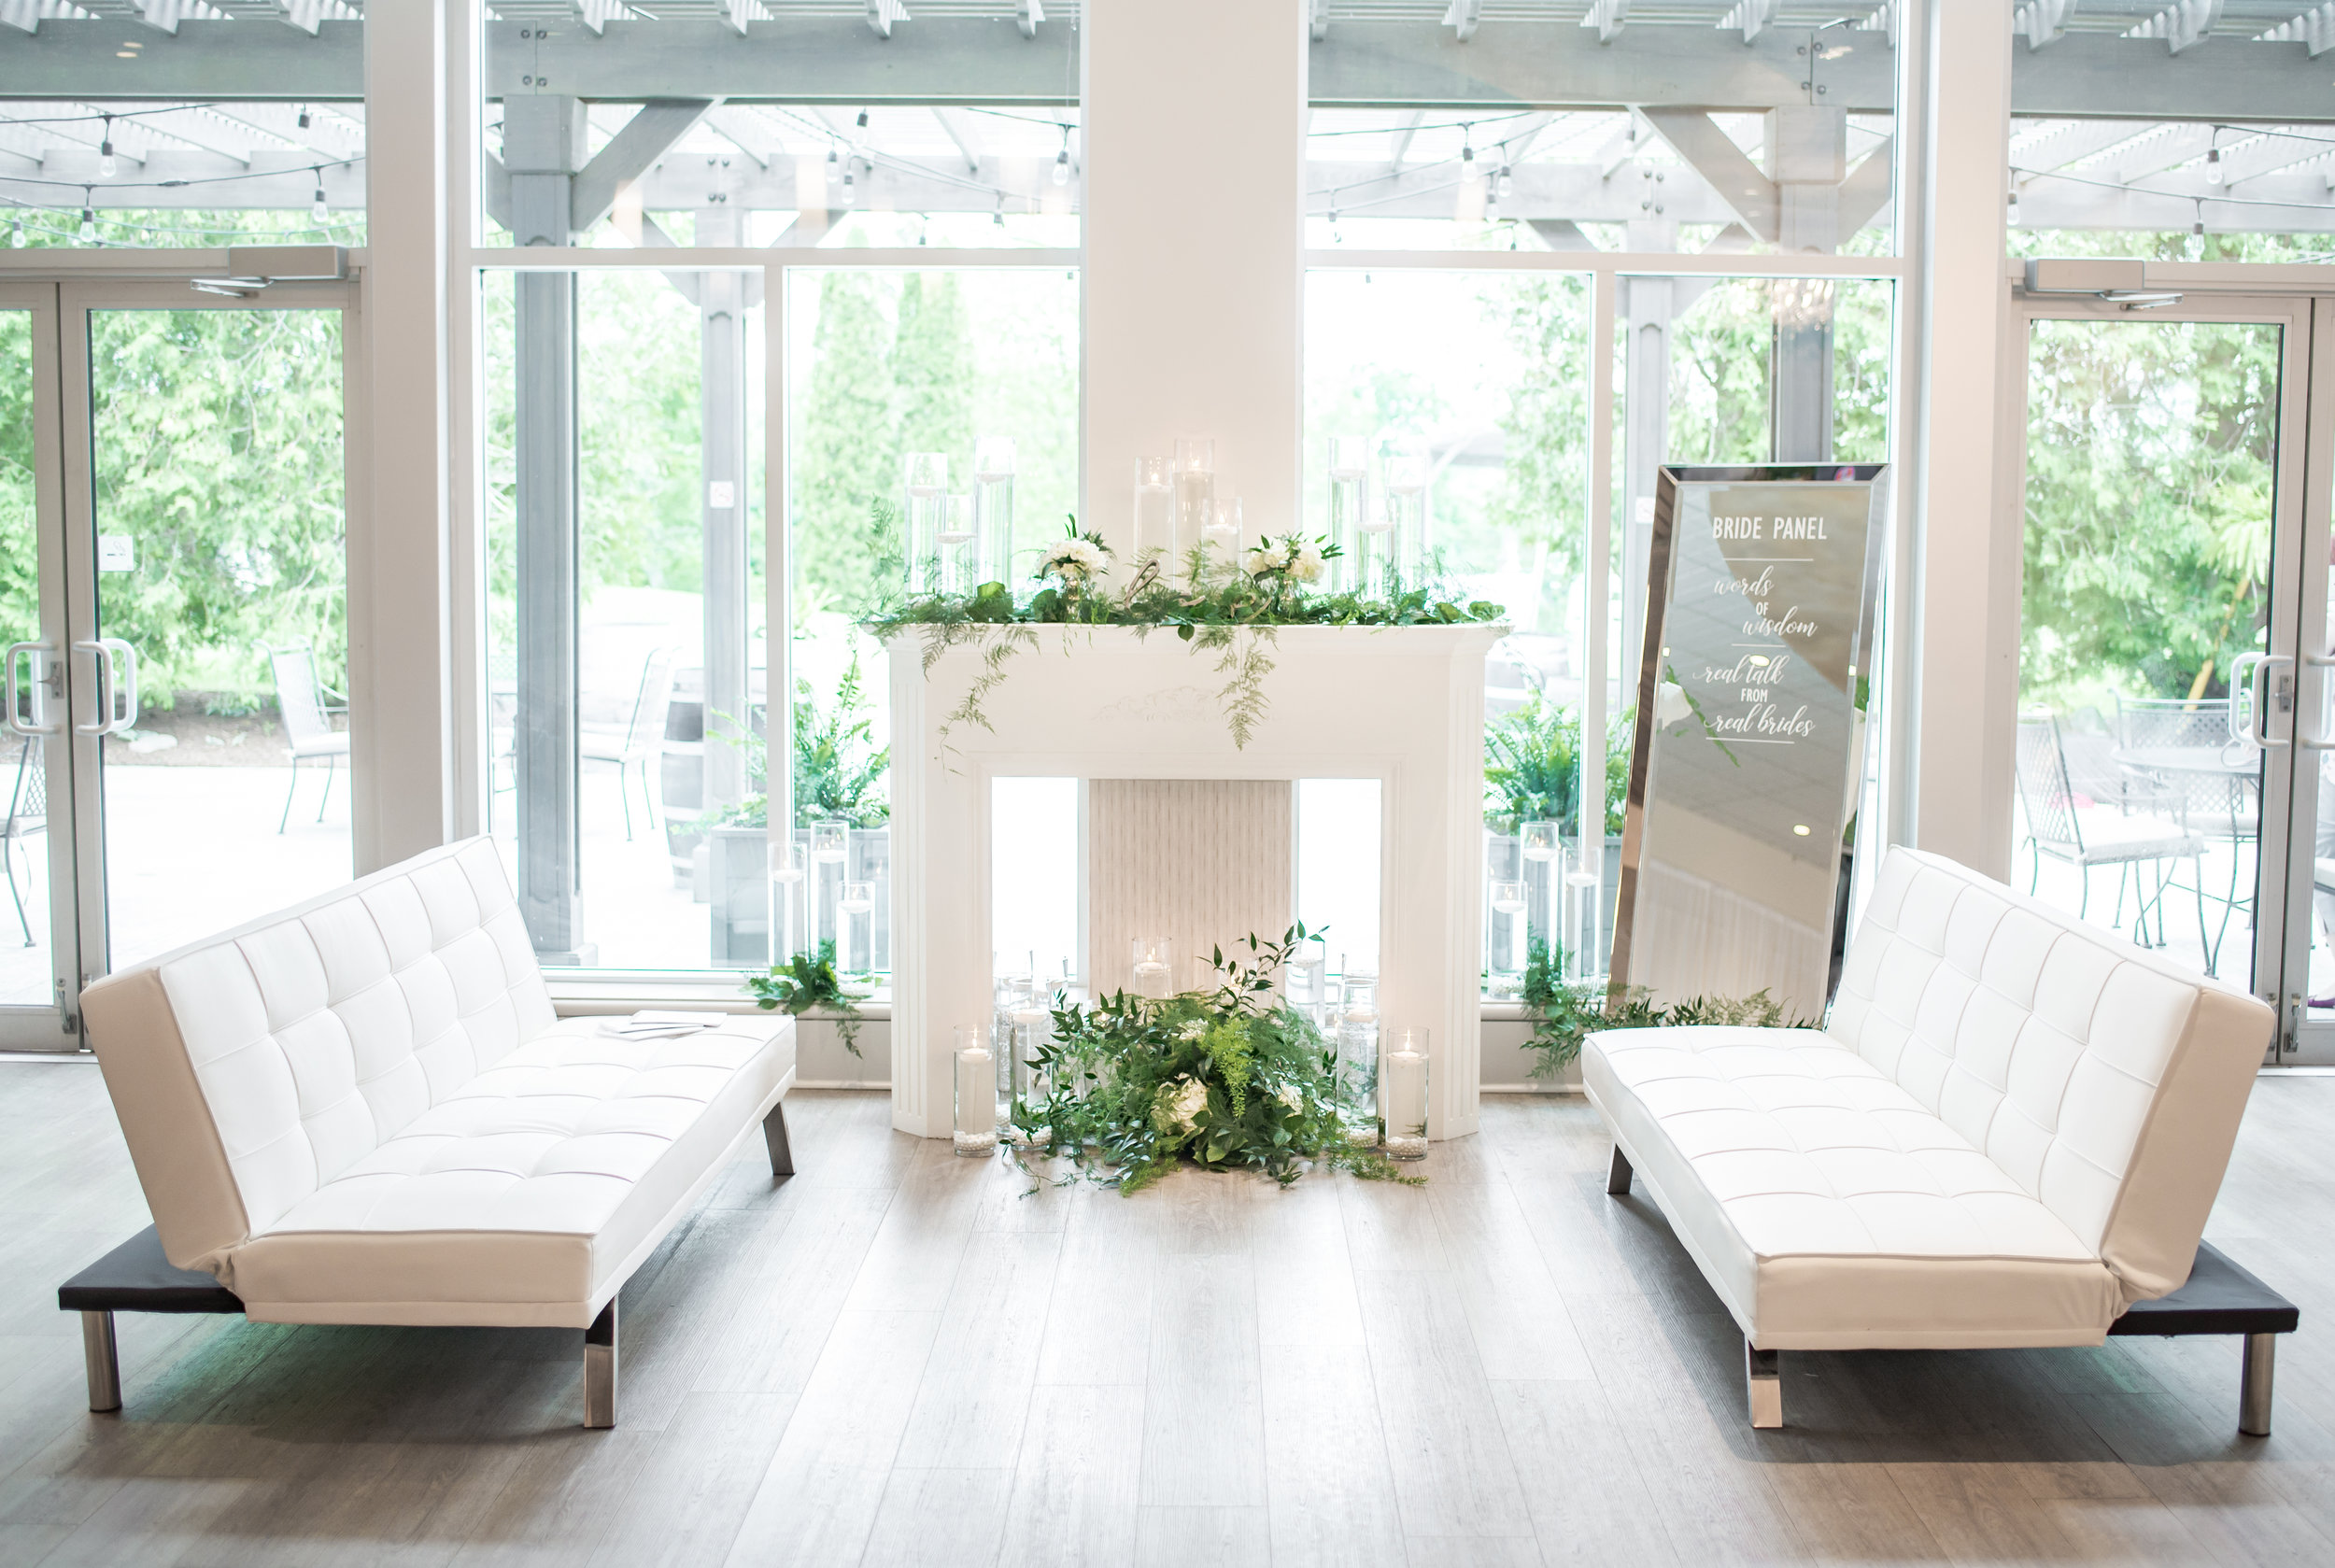 In addition to inspiring   attendees of the Open House to setup intimate conversation areas or photo backdrops at their own wedding, the ultra-dreamy Ballroom lounge also provided the setting for our Real Bride Panel to provide words of wisdom to future couples.